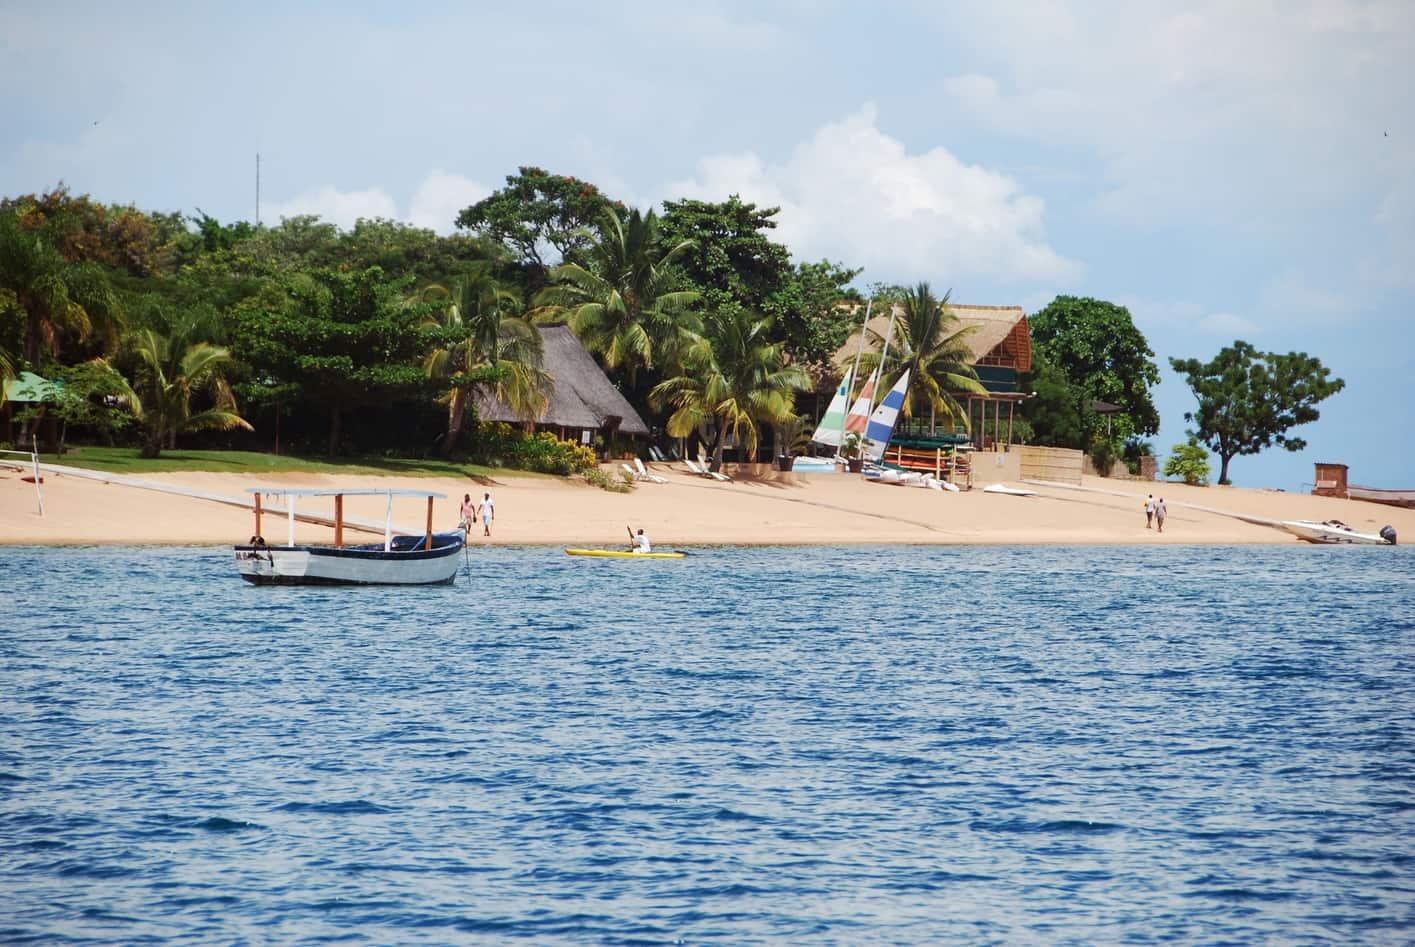 Is Malawi open for tourism?